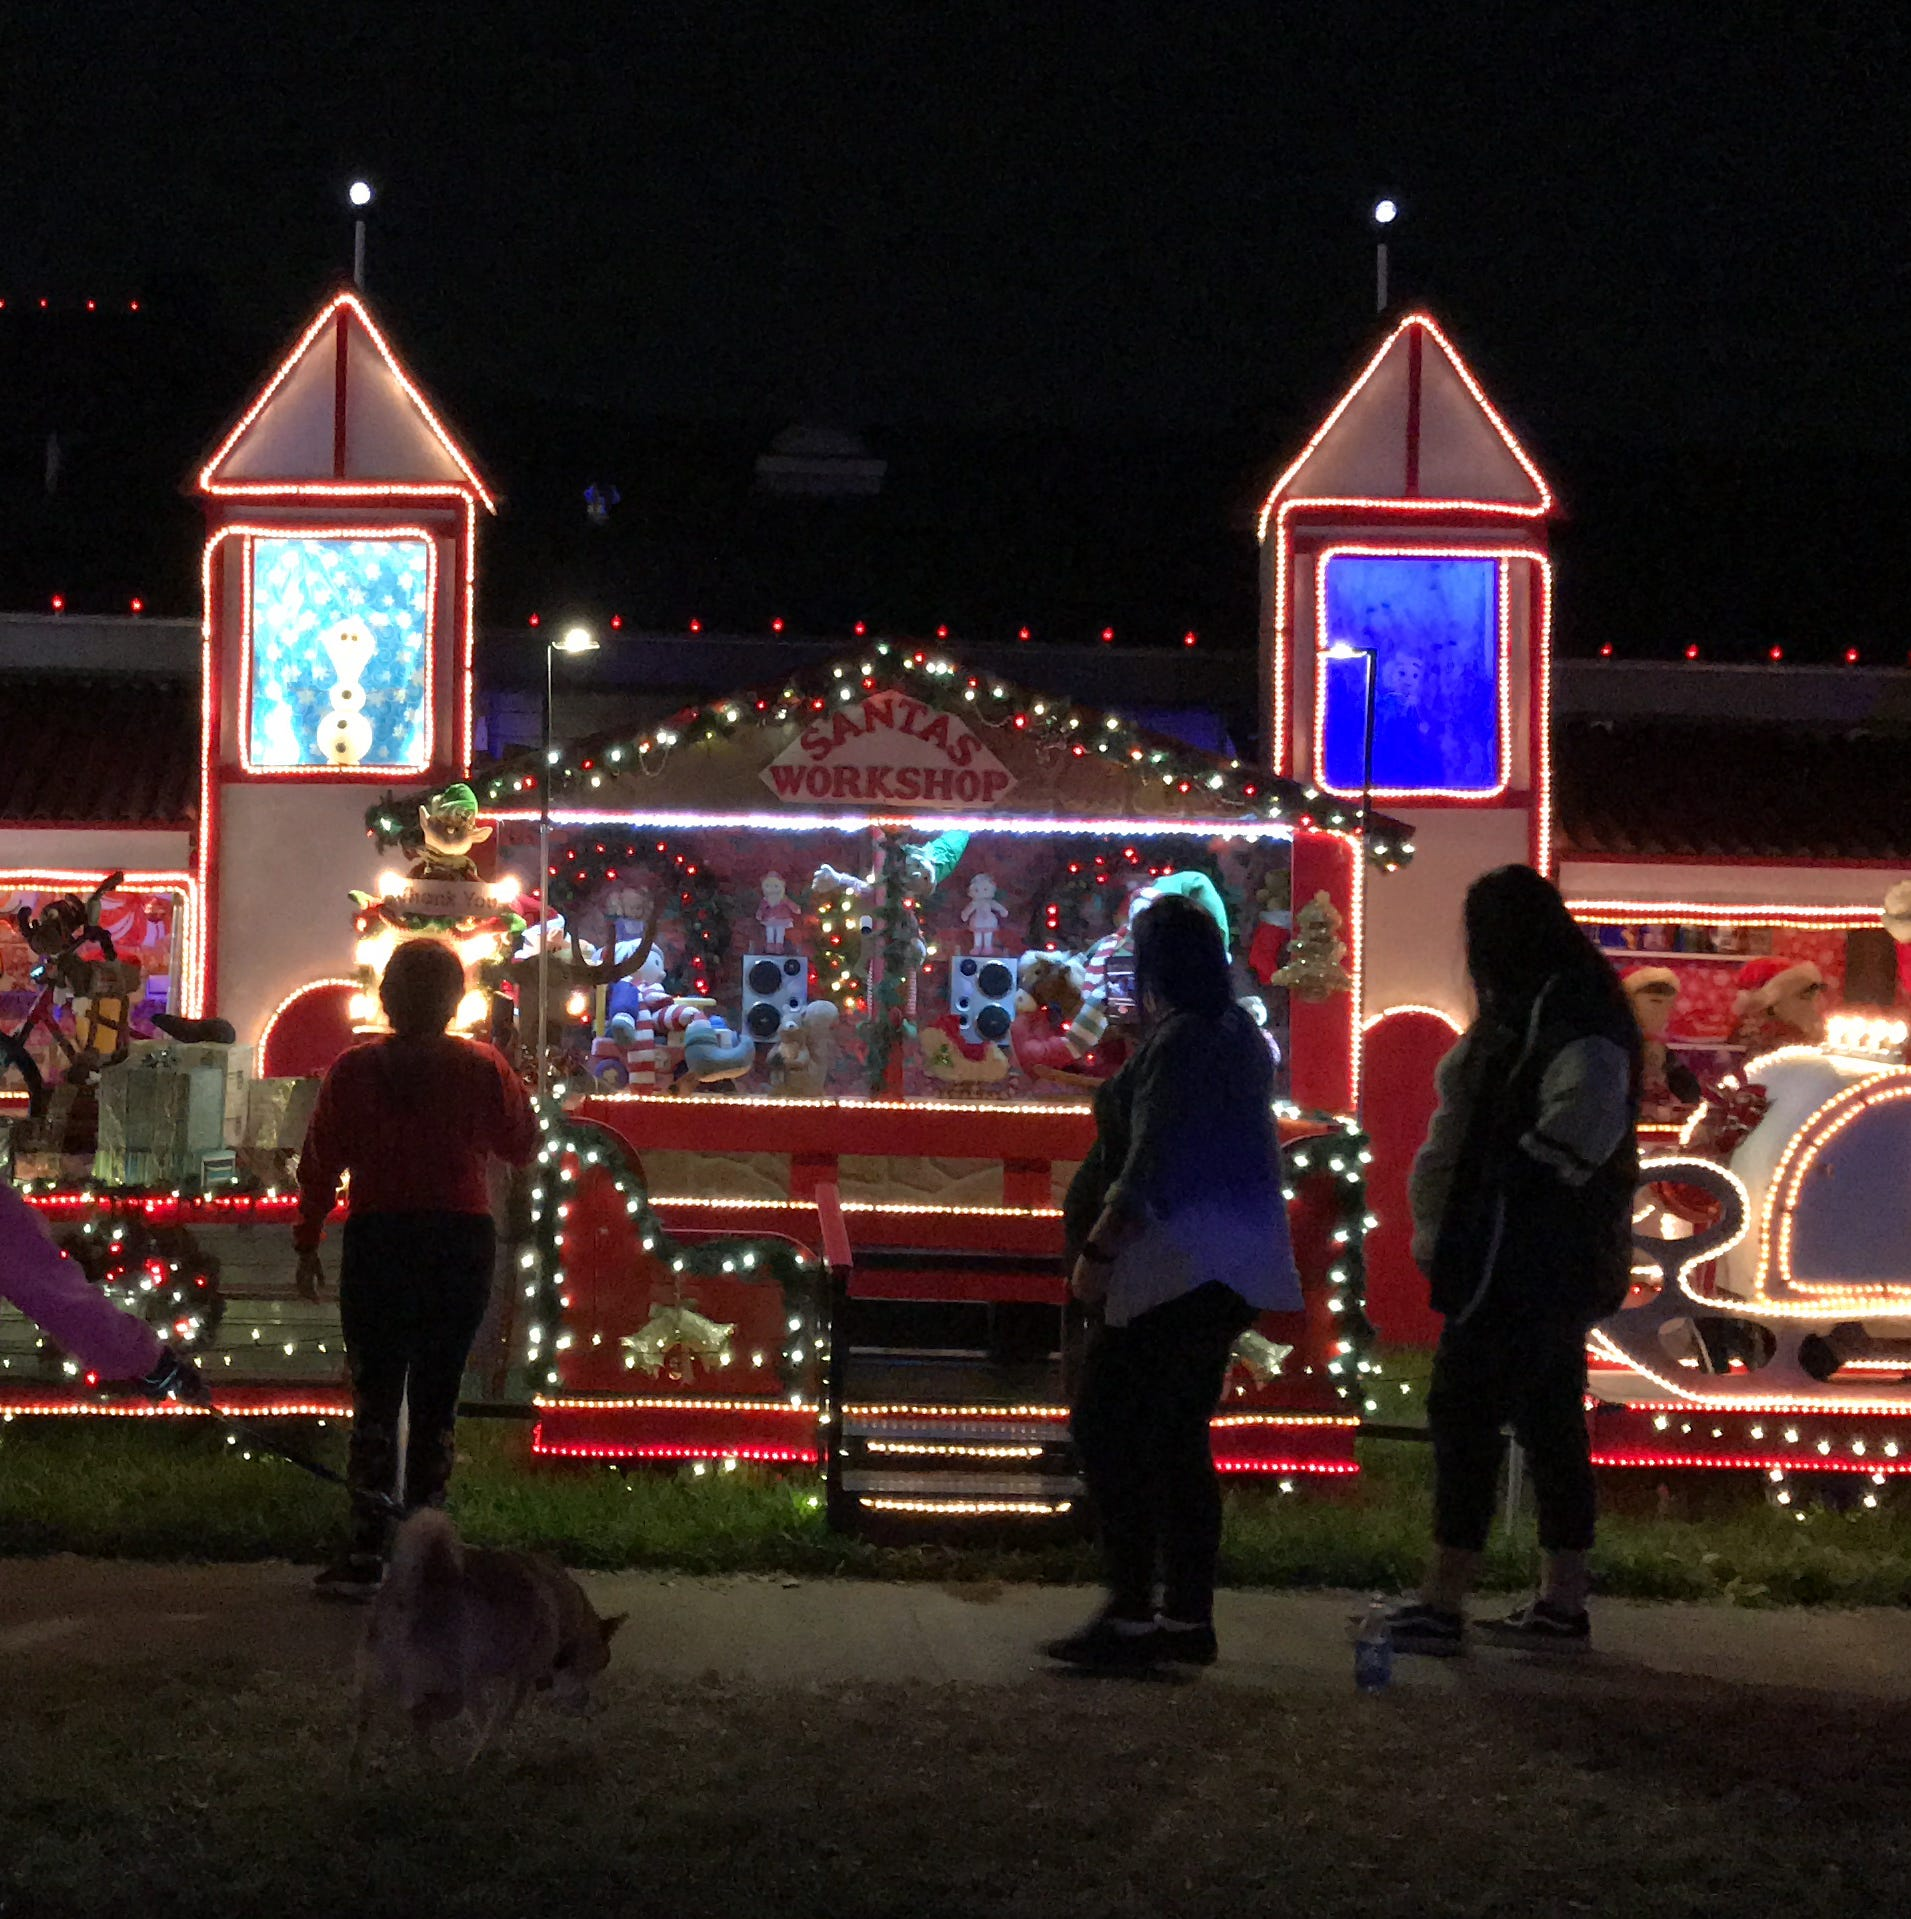 Where to find the best Christmas lights in Corpus Christi 2018